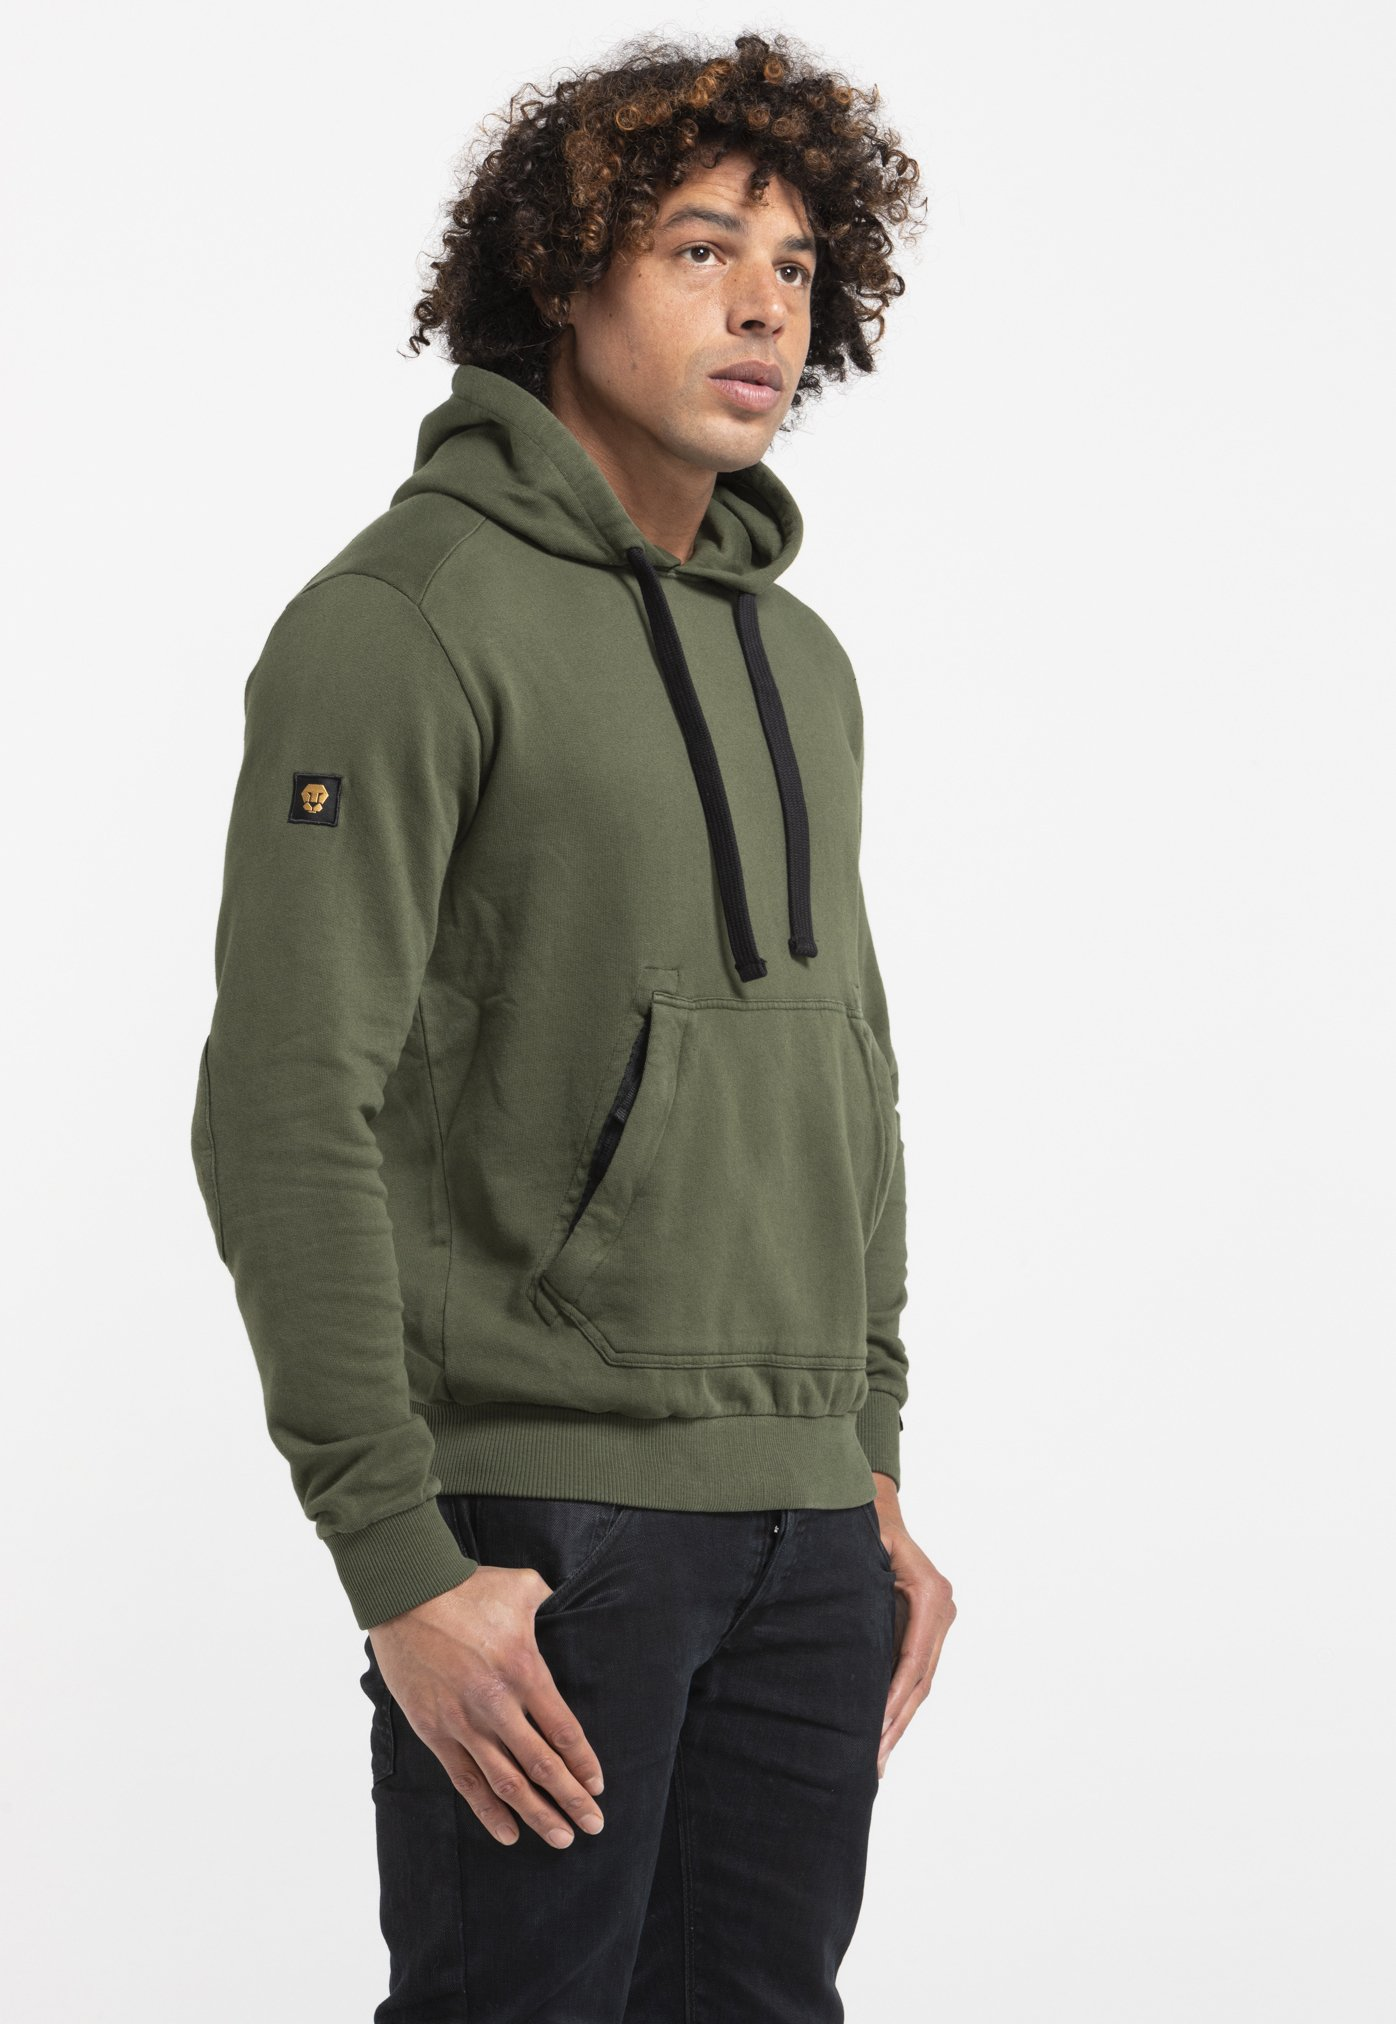 Liger Limited To 360 Pieces - Sweat À Capuche Green